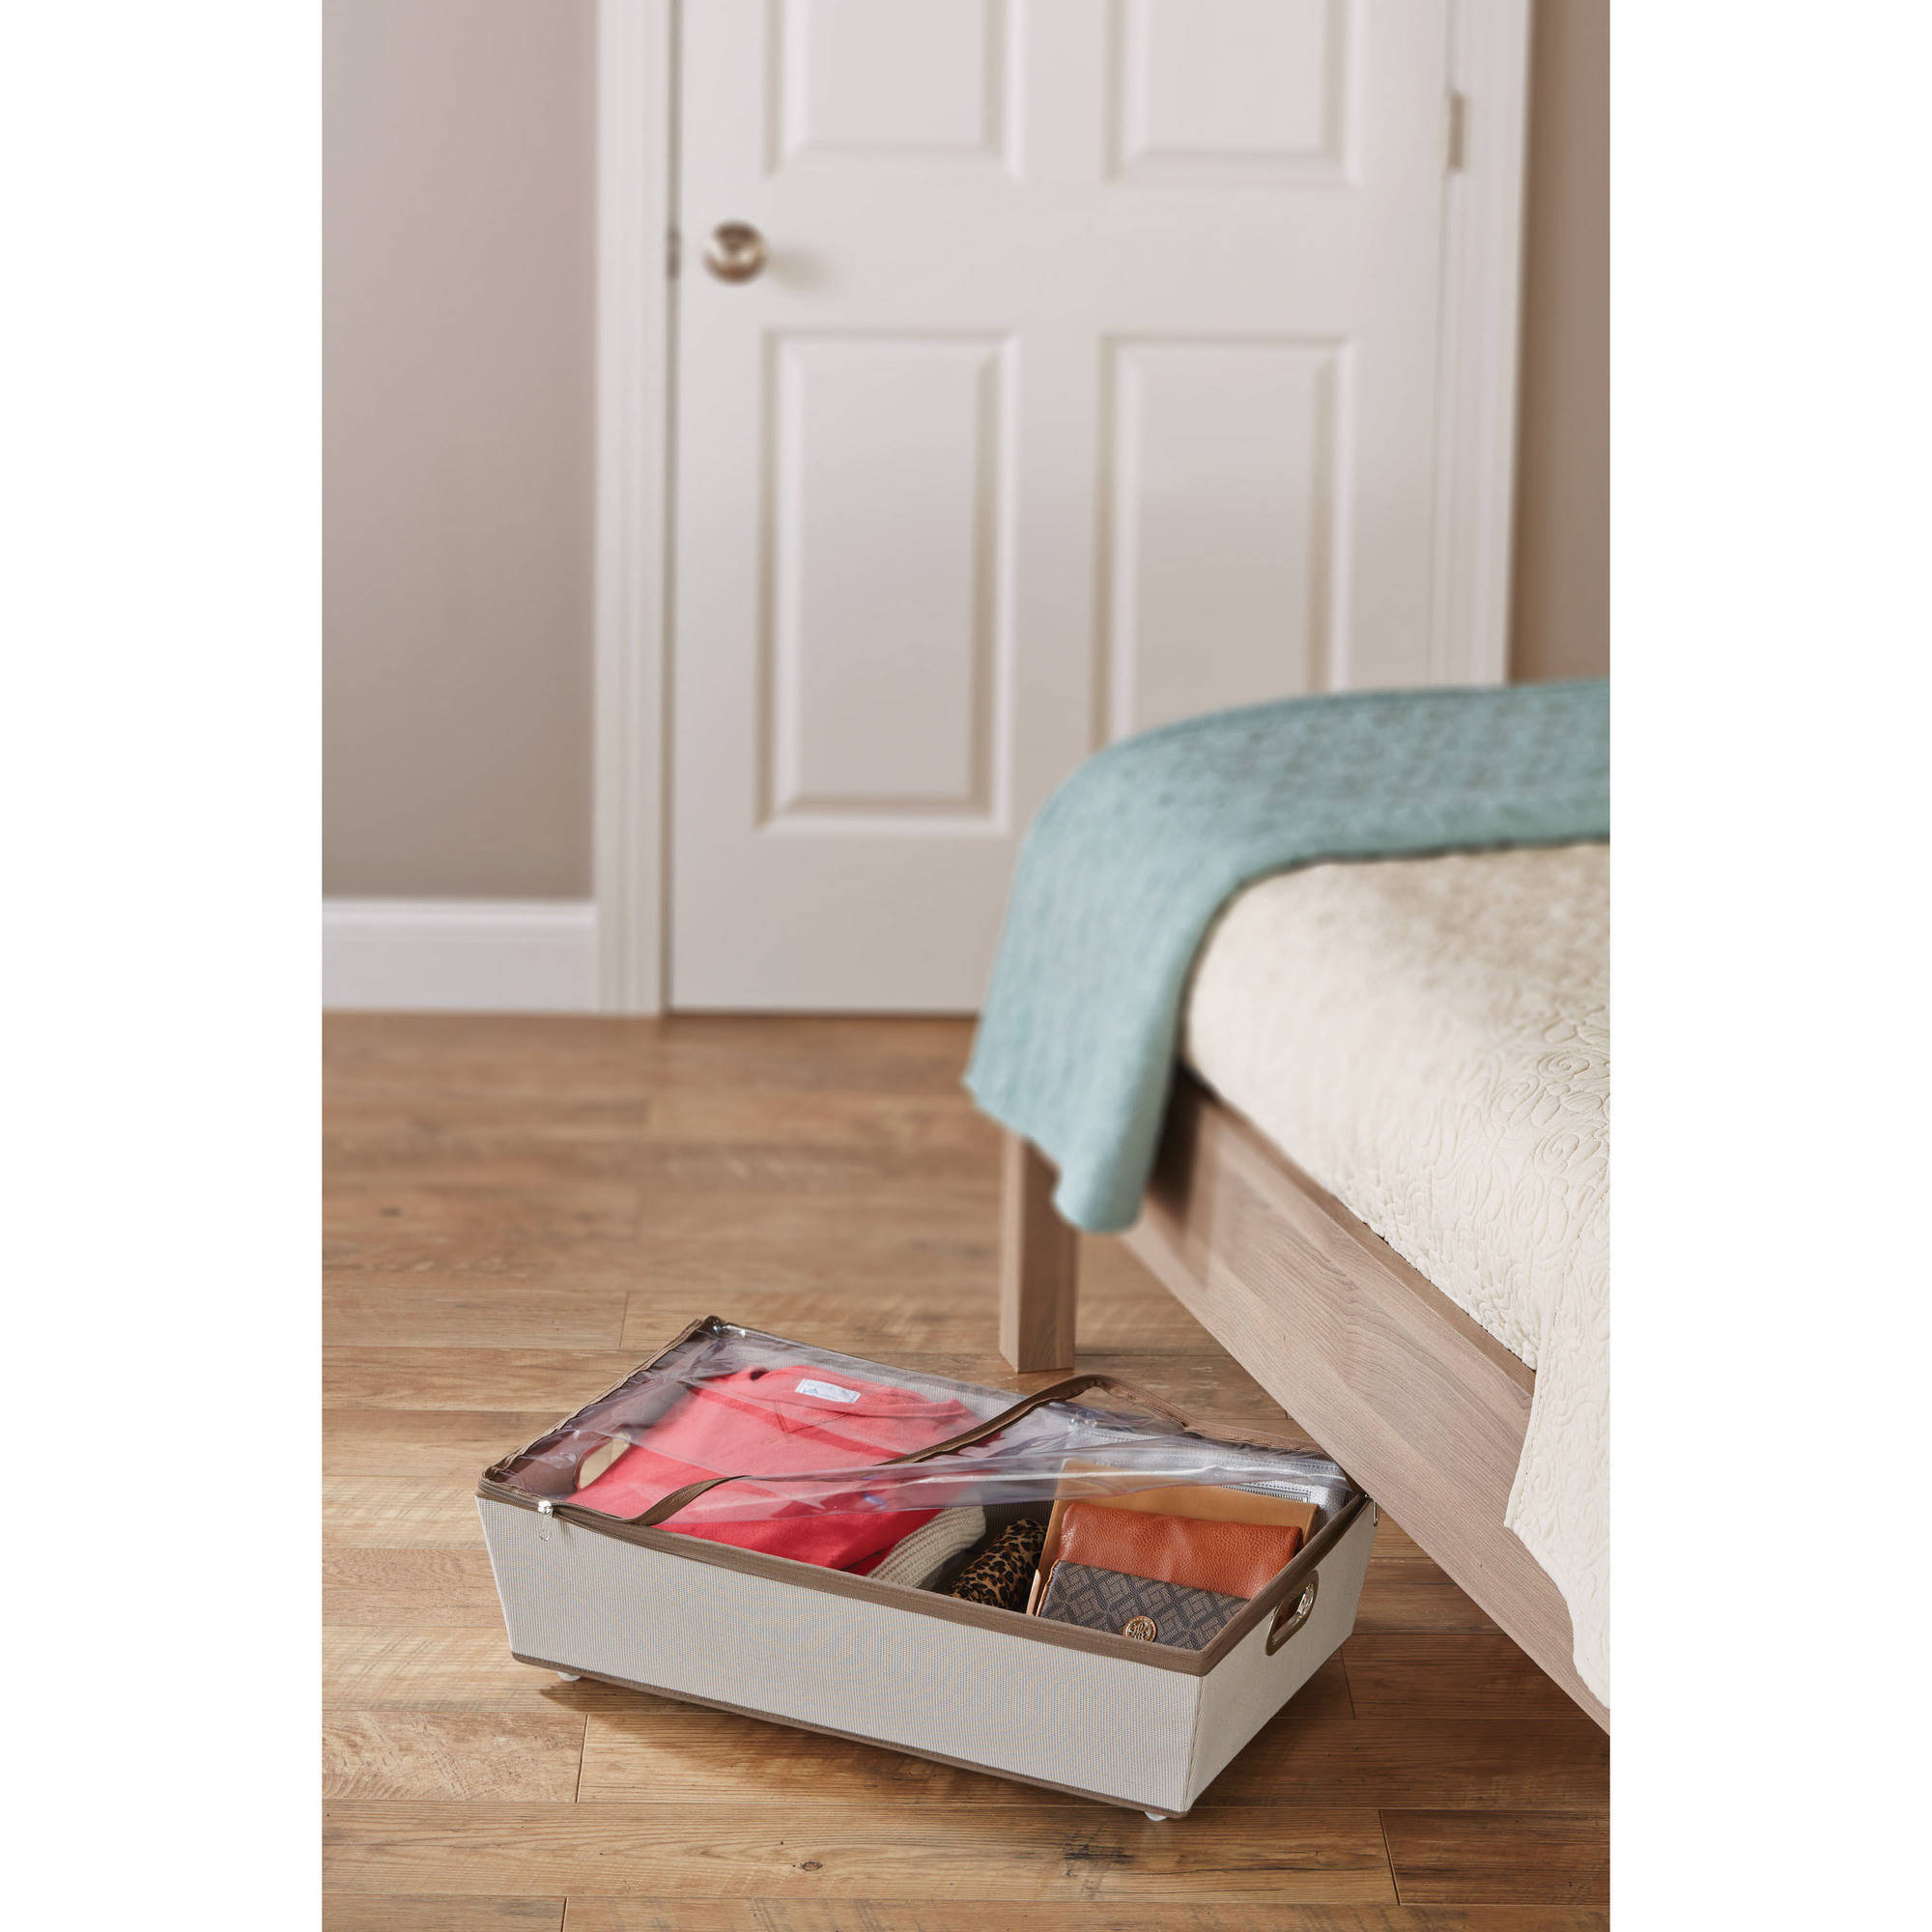 Better Homes and Gardens Organizer Underbed Bin